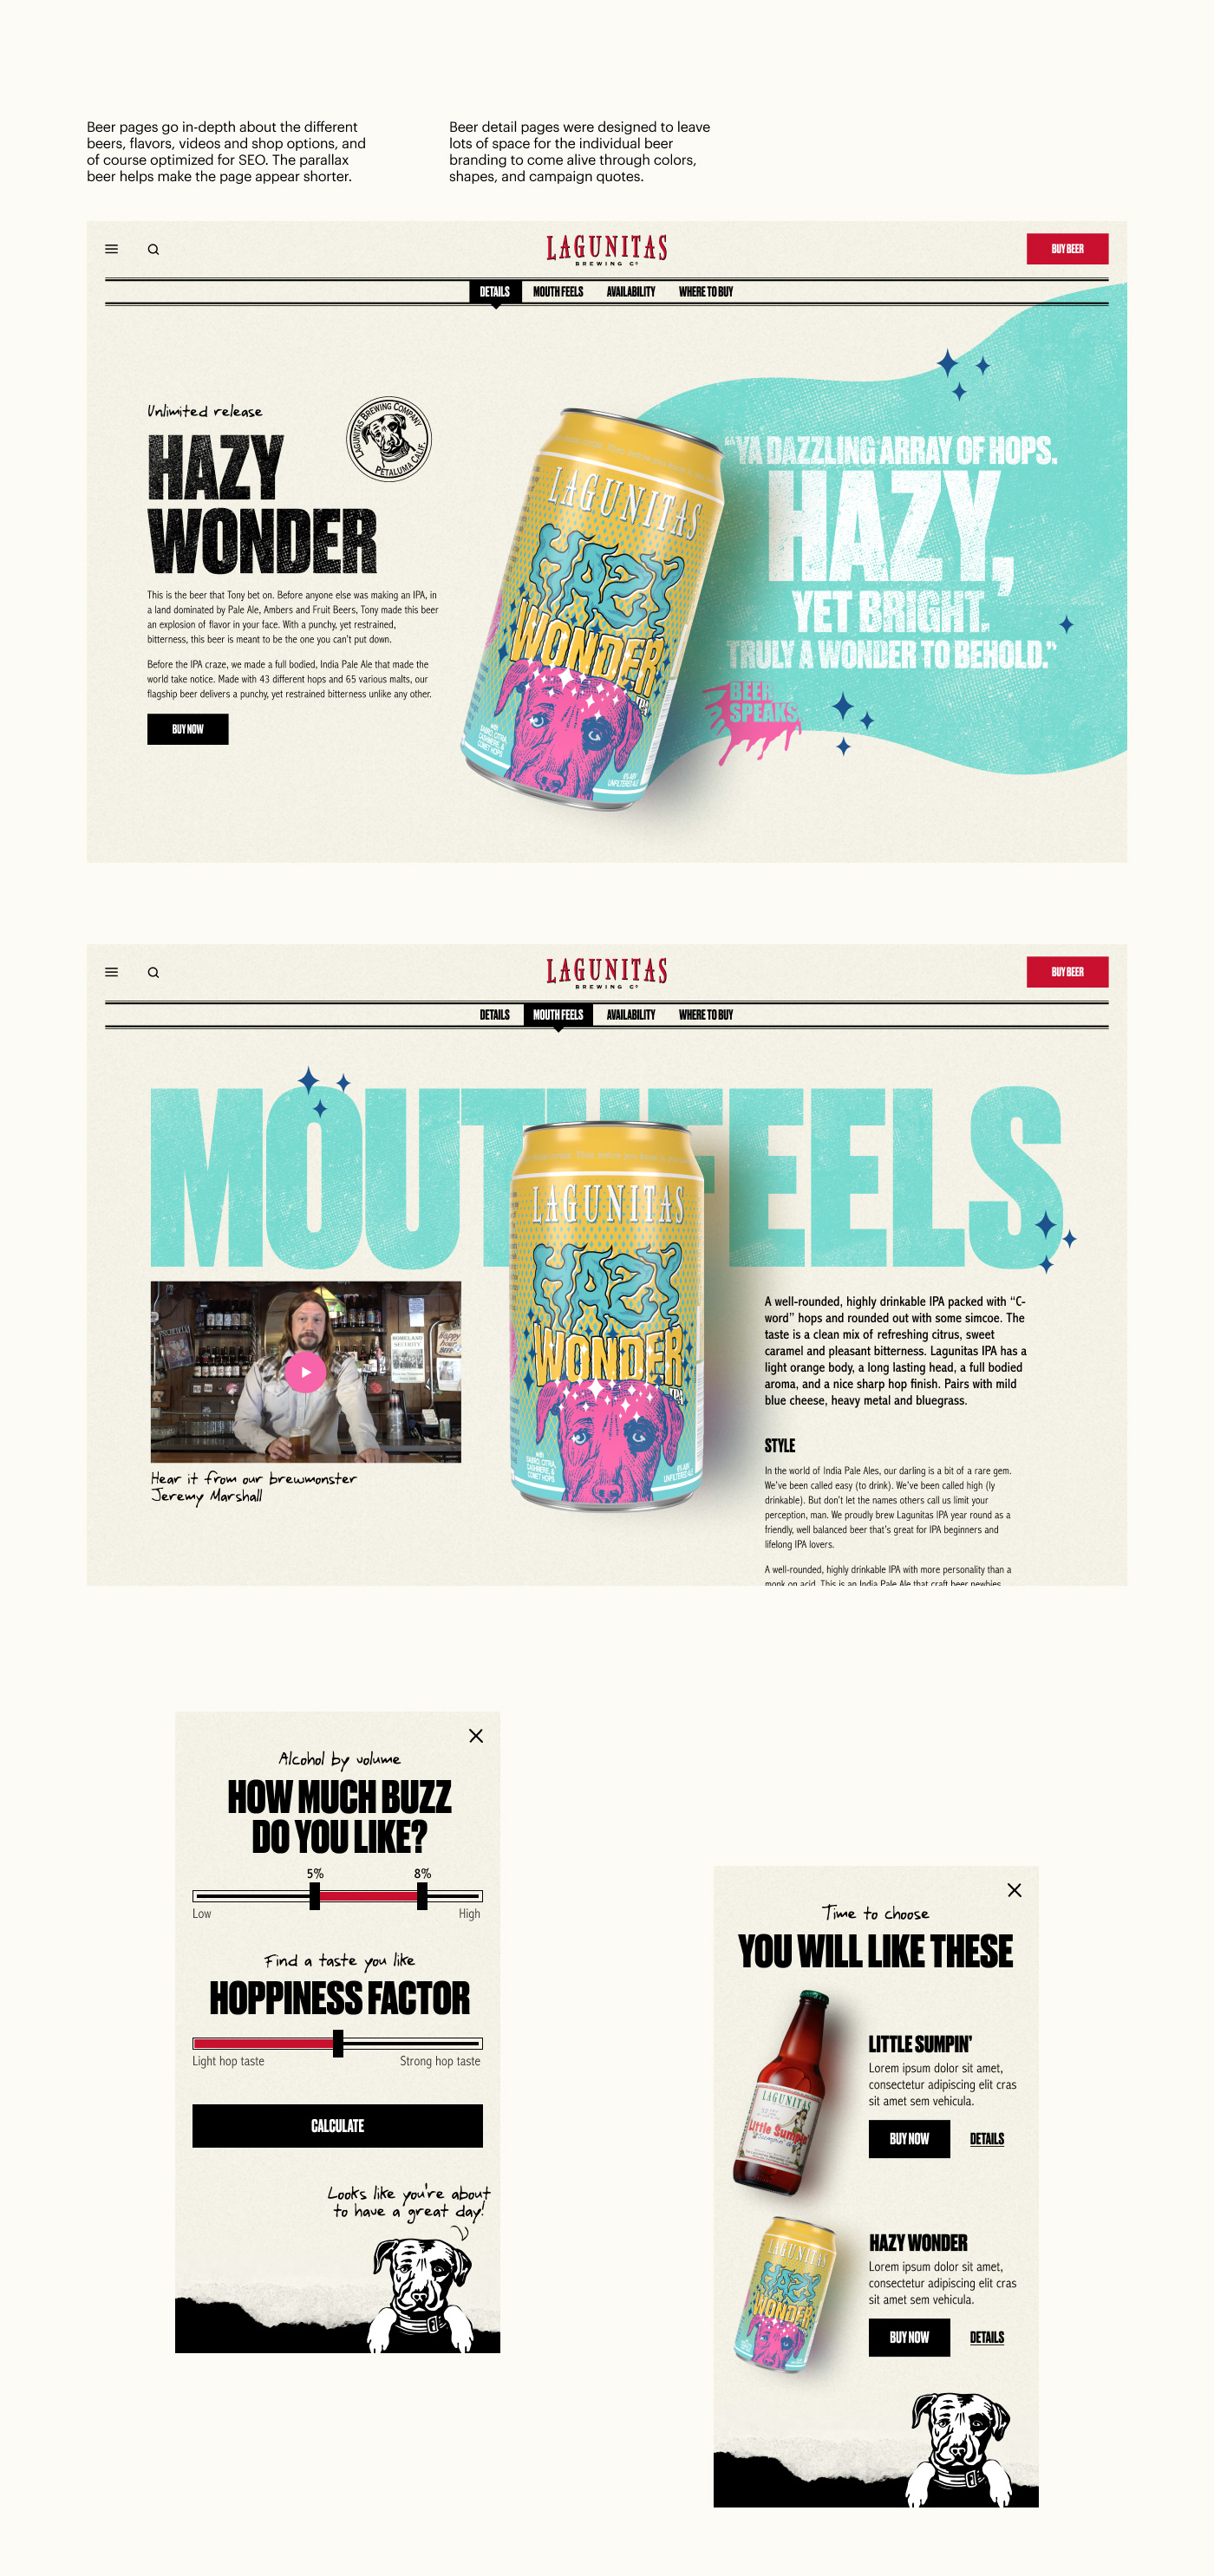 Hazy Wonder beer detail page. Colorful page with sparkles, that talks about cannabis beer.